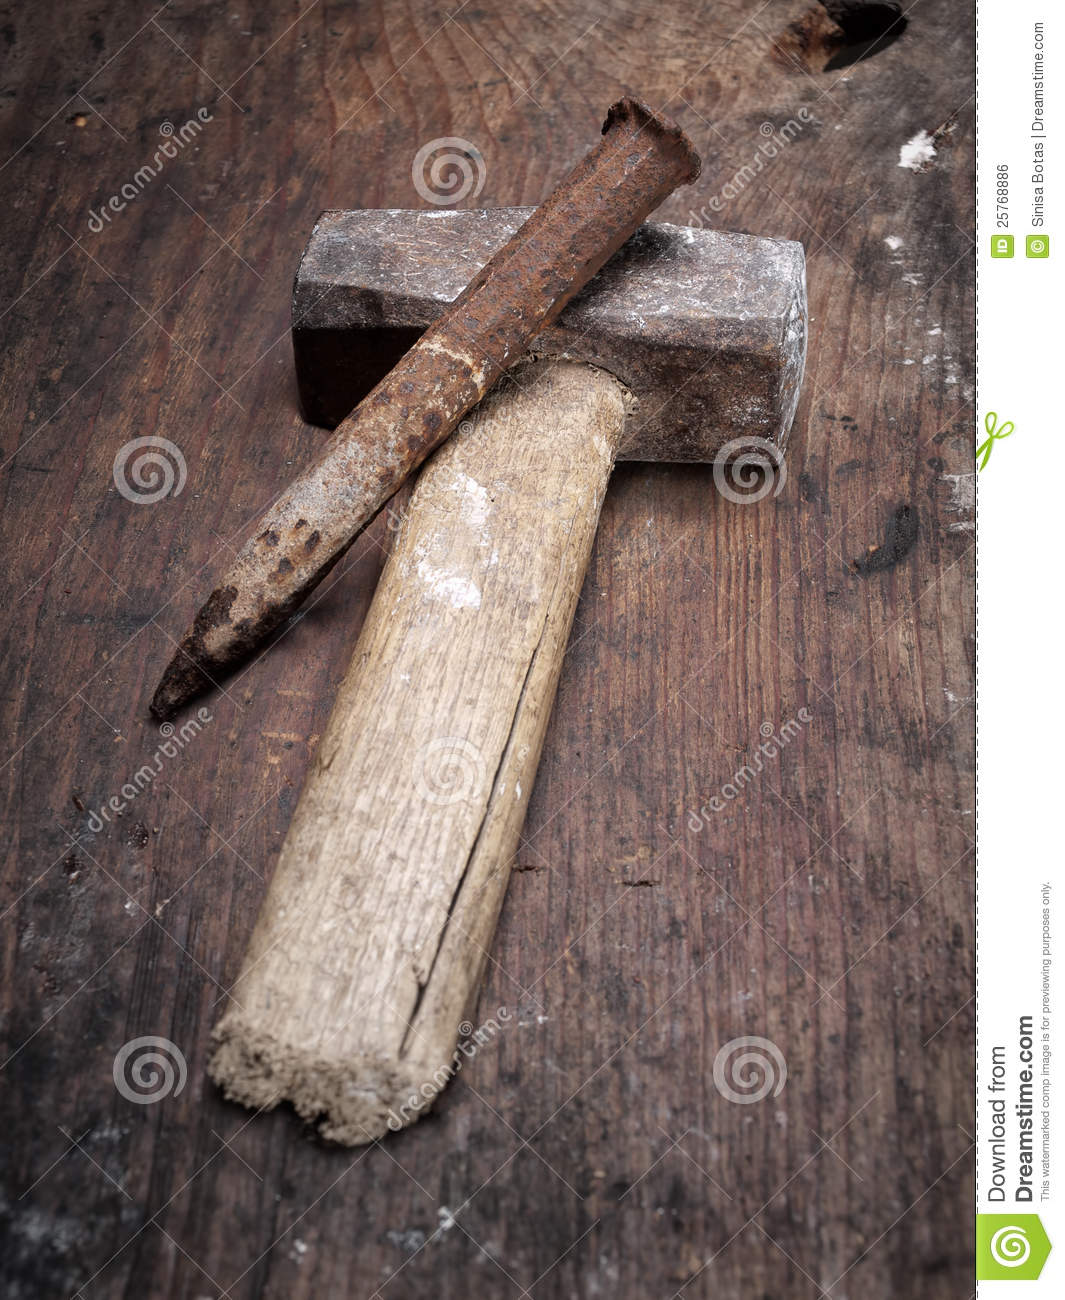 Hammer And Chisel Royalty Free Stock Image - Image: 25768886